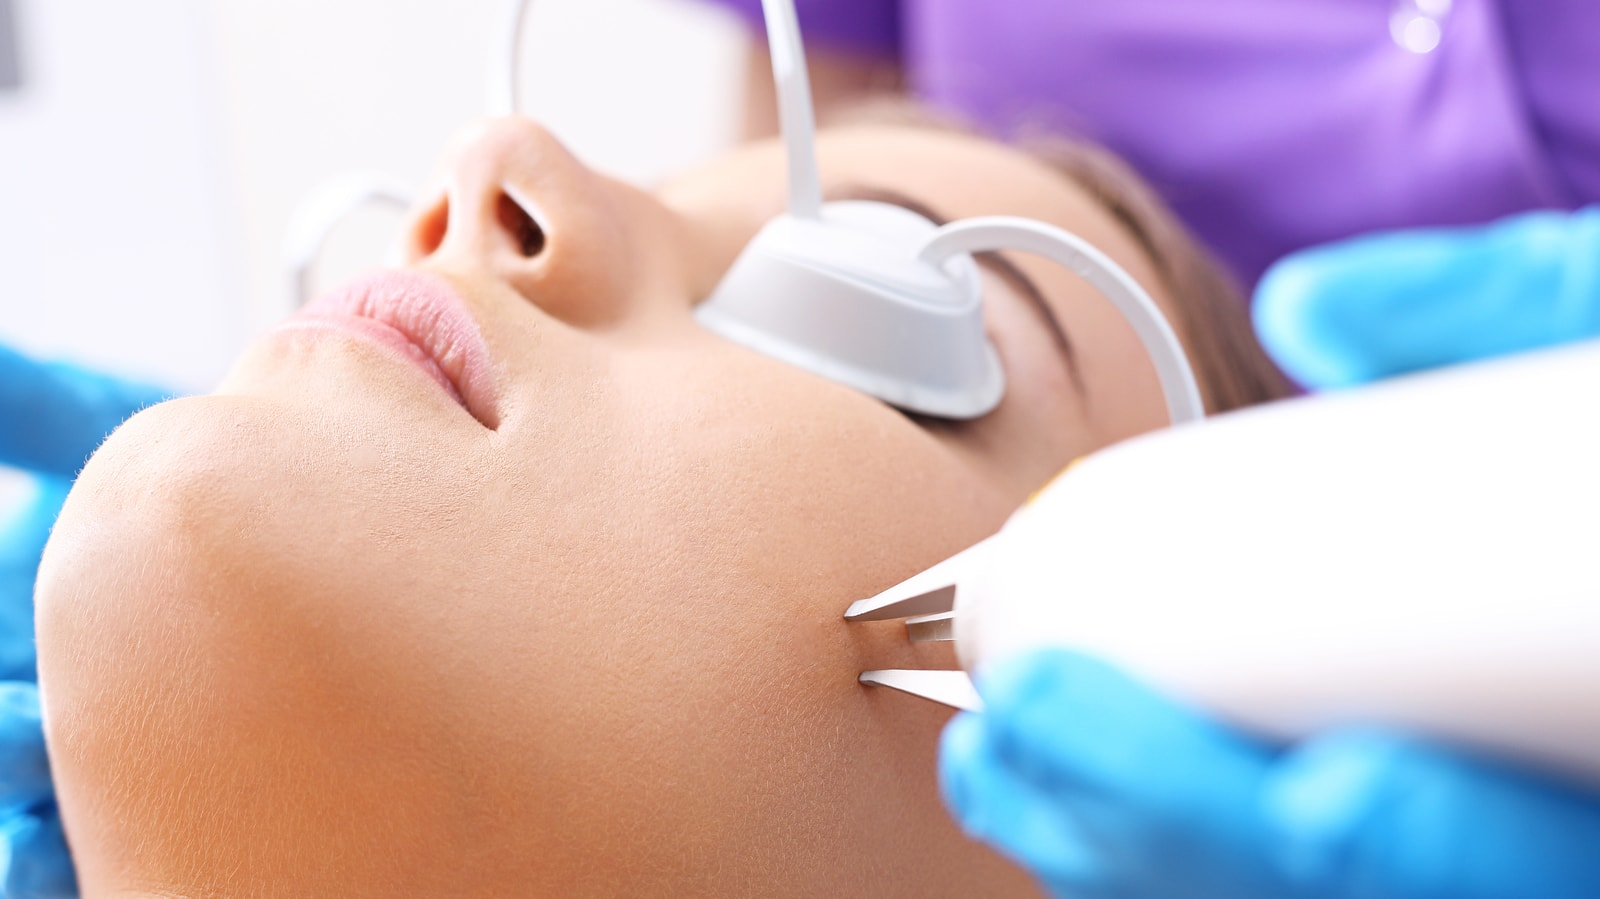 Laser Skin Resurfacing for Acne Scar Treatment